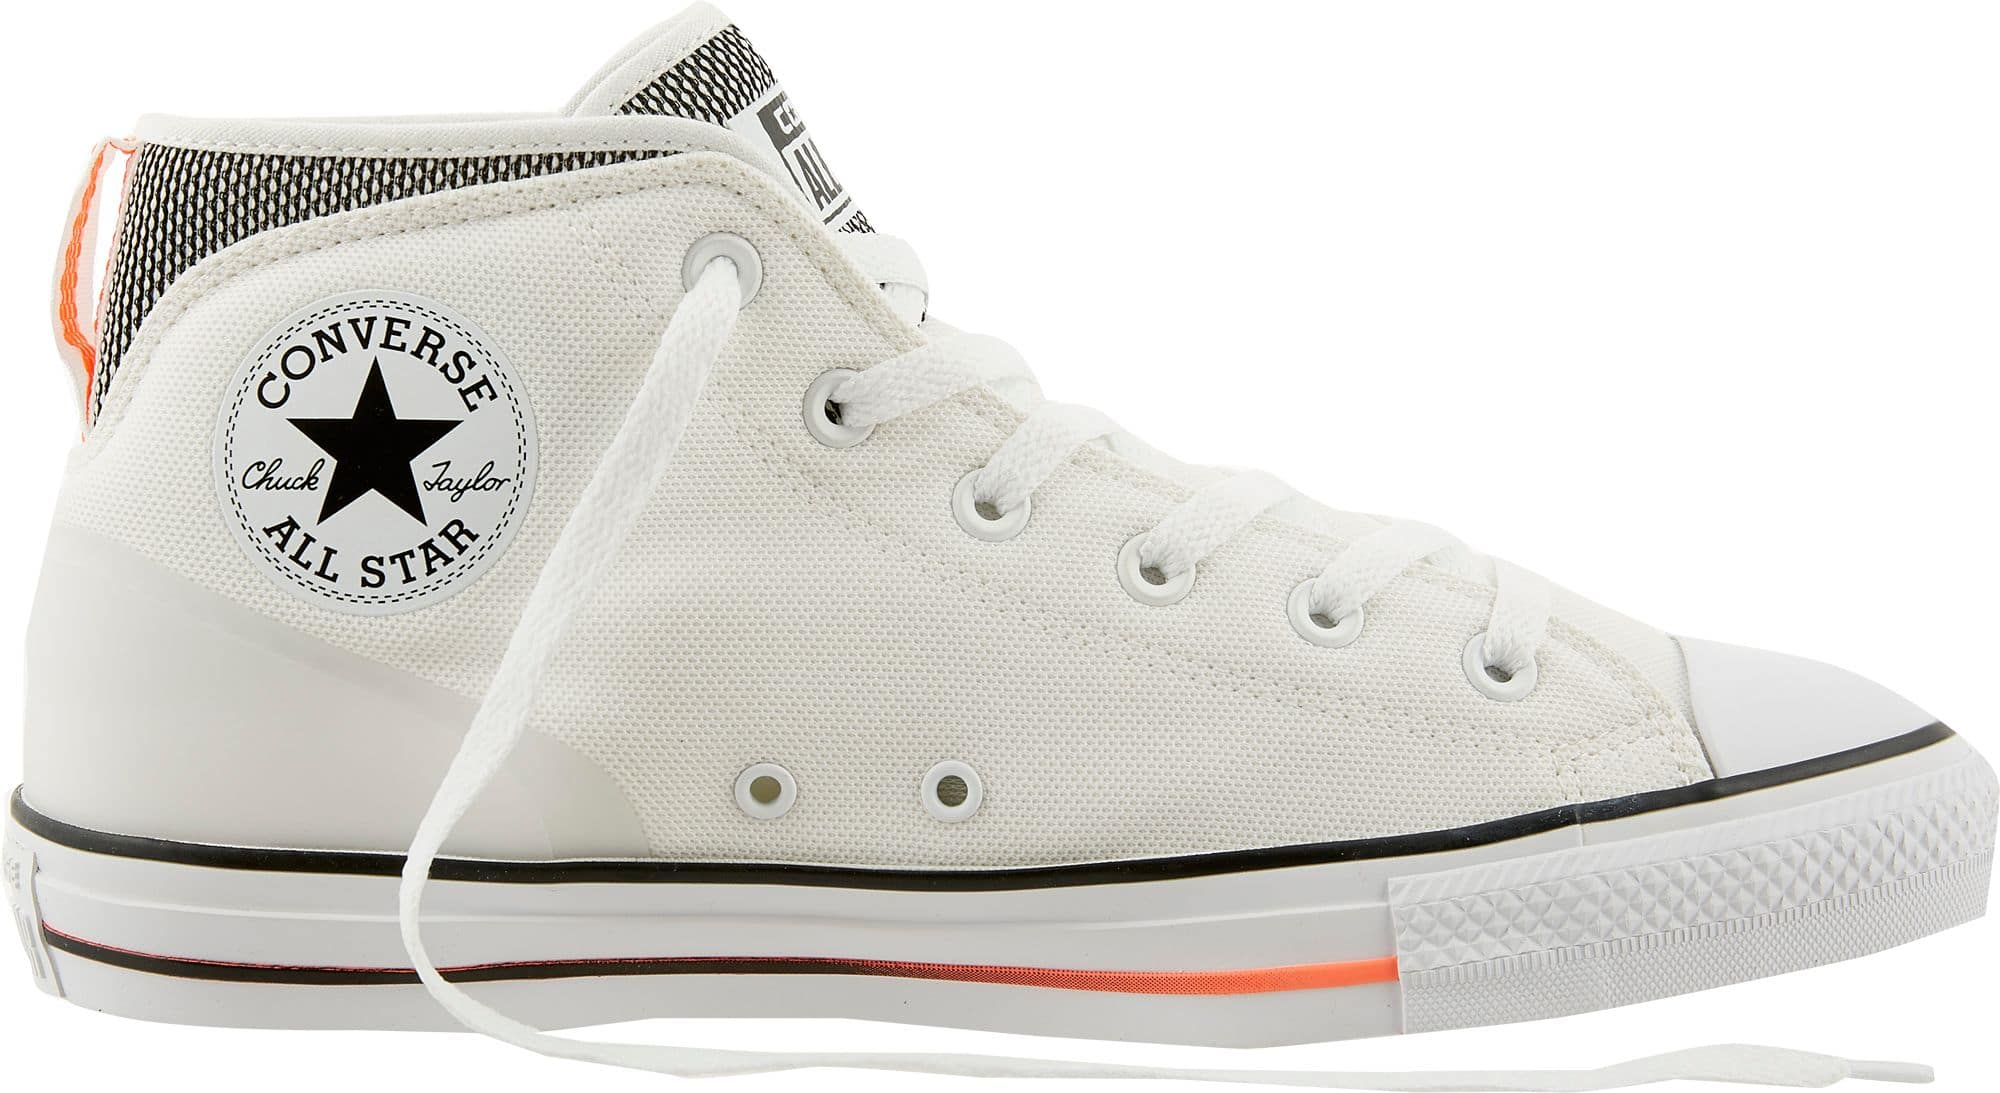 Converse Men s Chuck Taylor All Star Syde Street Casual Sneakers ... 42617d806